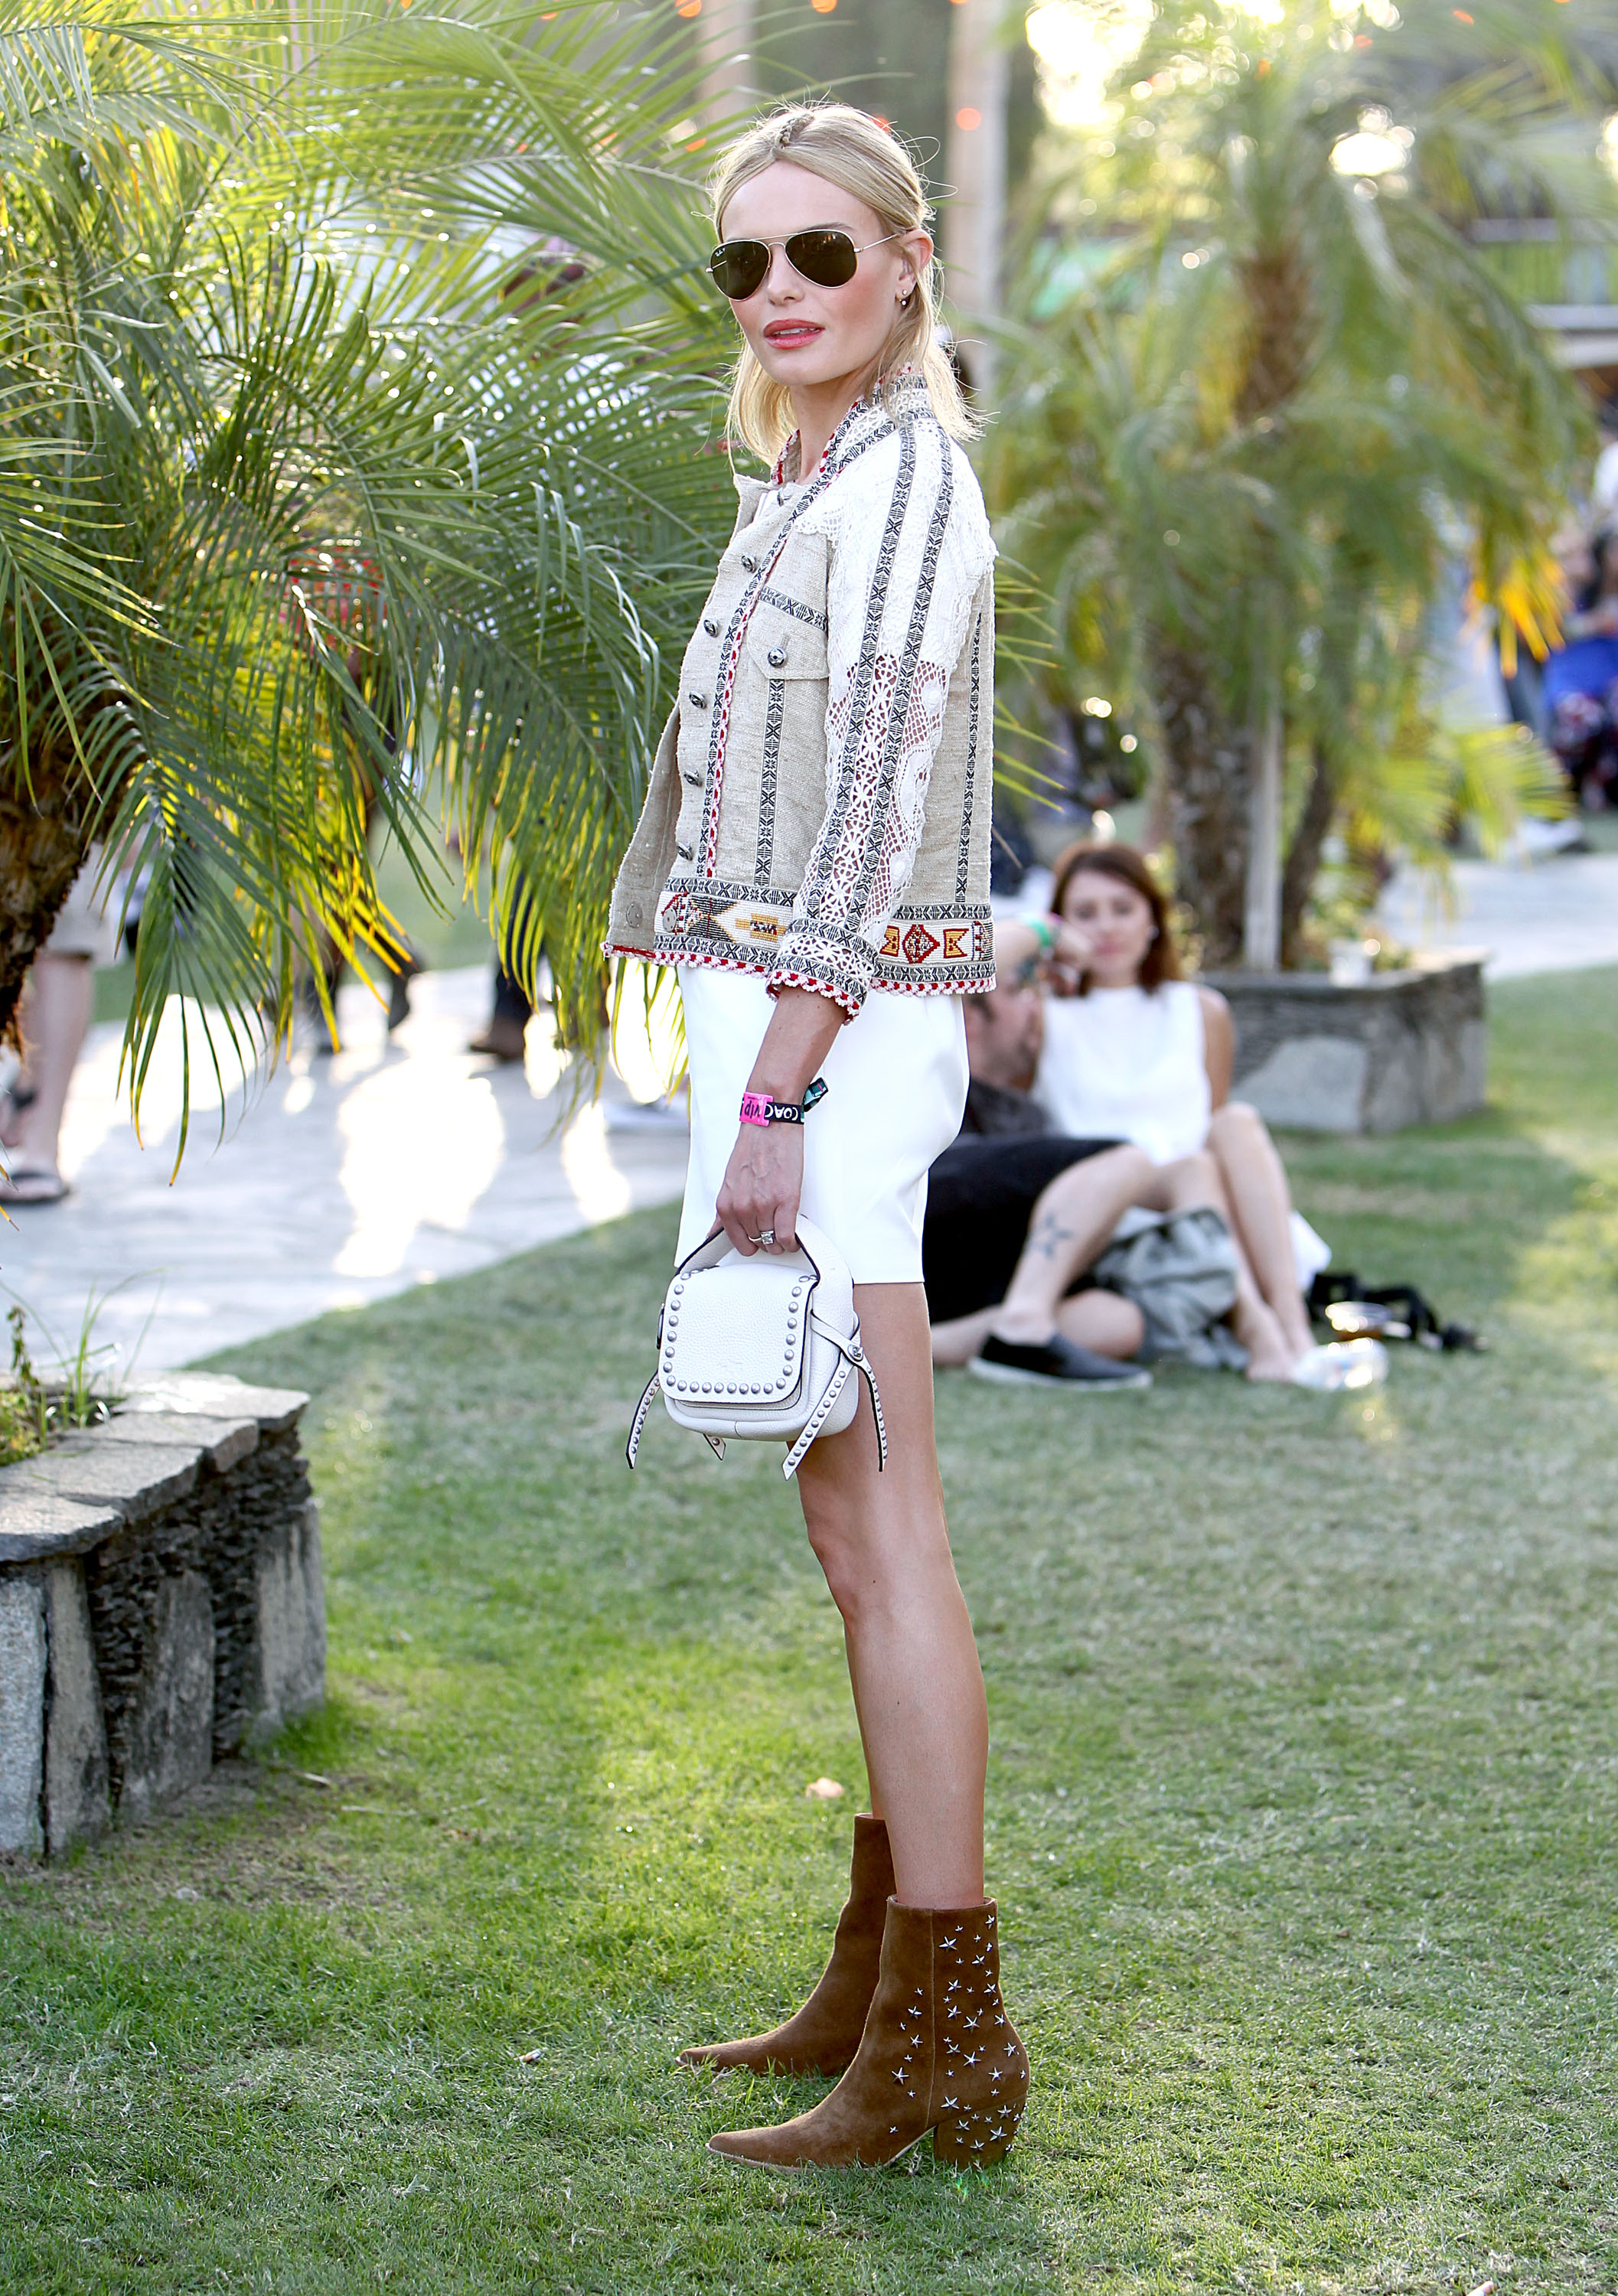 Street Style At The 2015 Coachella Valley Music And Arts Festival - Weekend 1